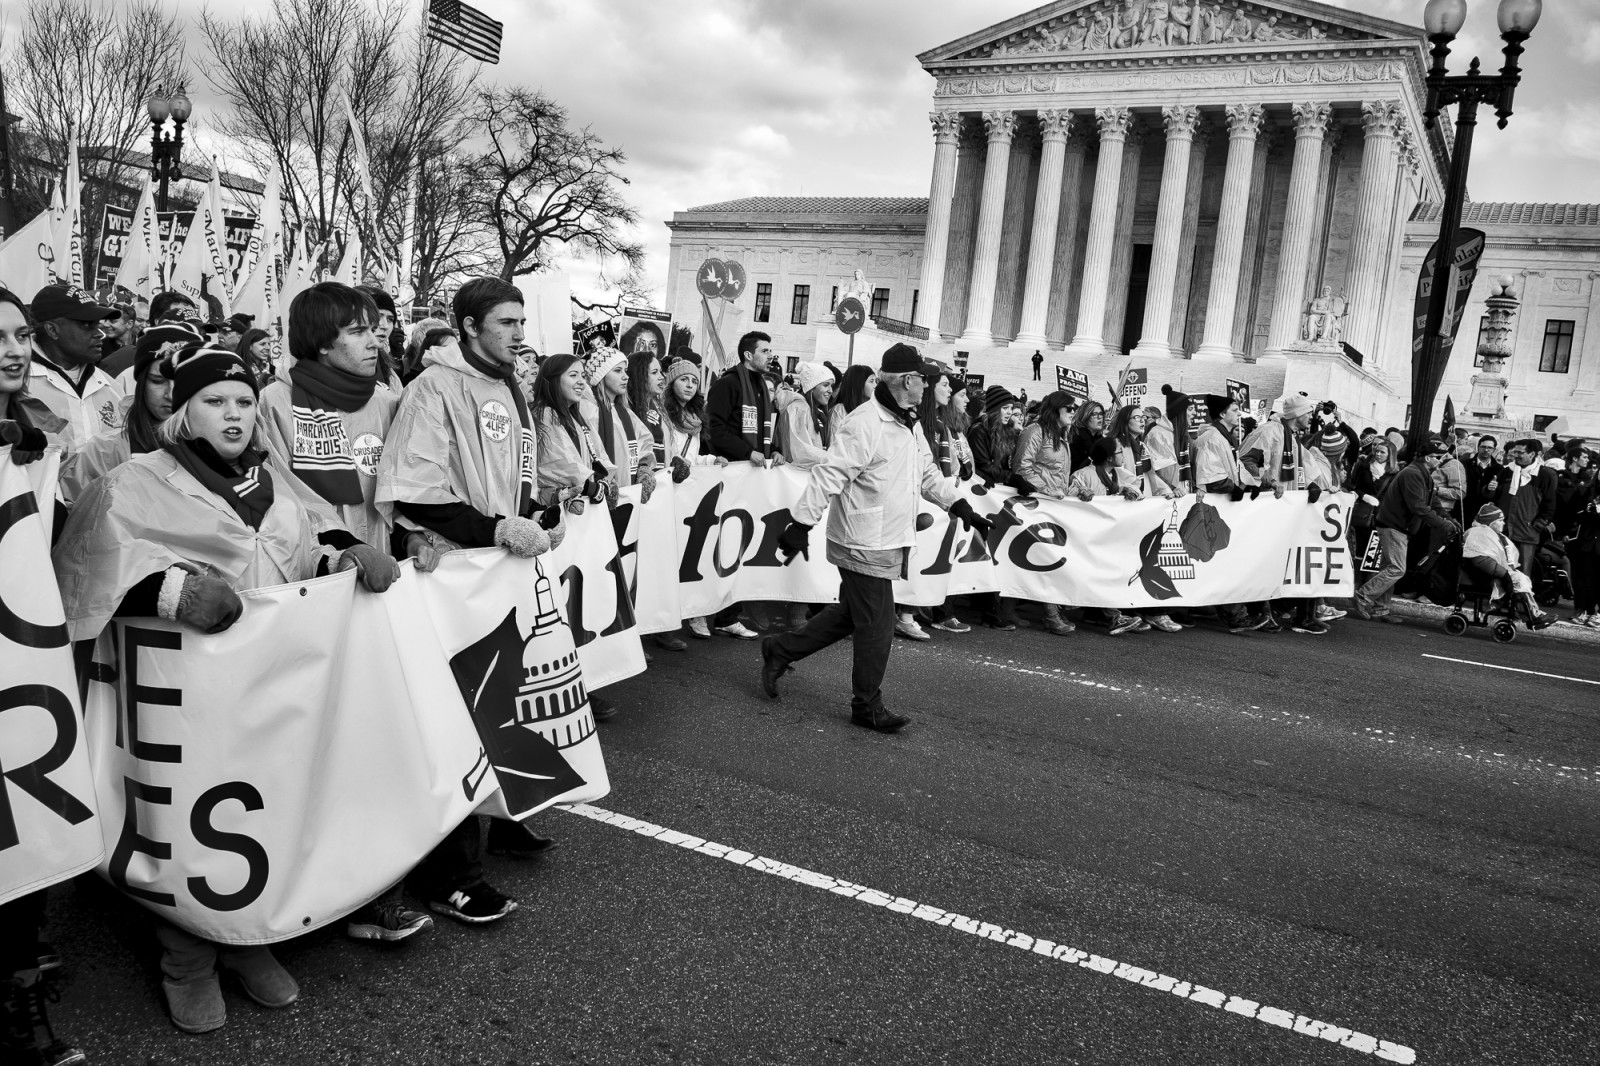 Anti-abortion activists pass in front of the US Supreme Court as they take part in the 42nd March for Life in Washington, DC on January 22, 2015. Activists from across the nation participated in the annual pro-life rally protesting abortion and the 1973 Roe v. Wade Supreme Court decision legalizing abortion. UPI/Pete Marovich